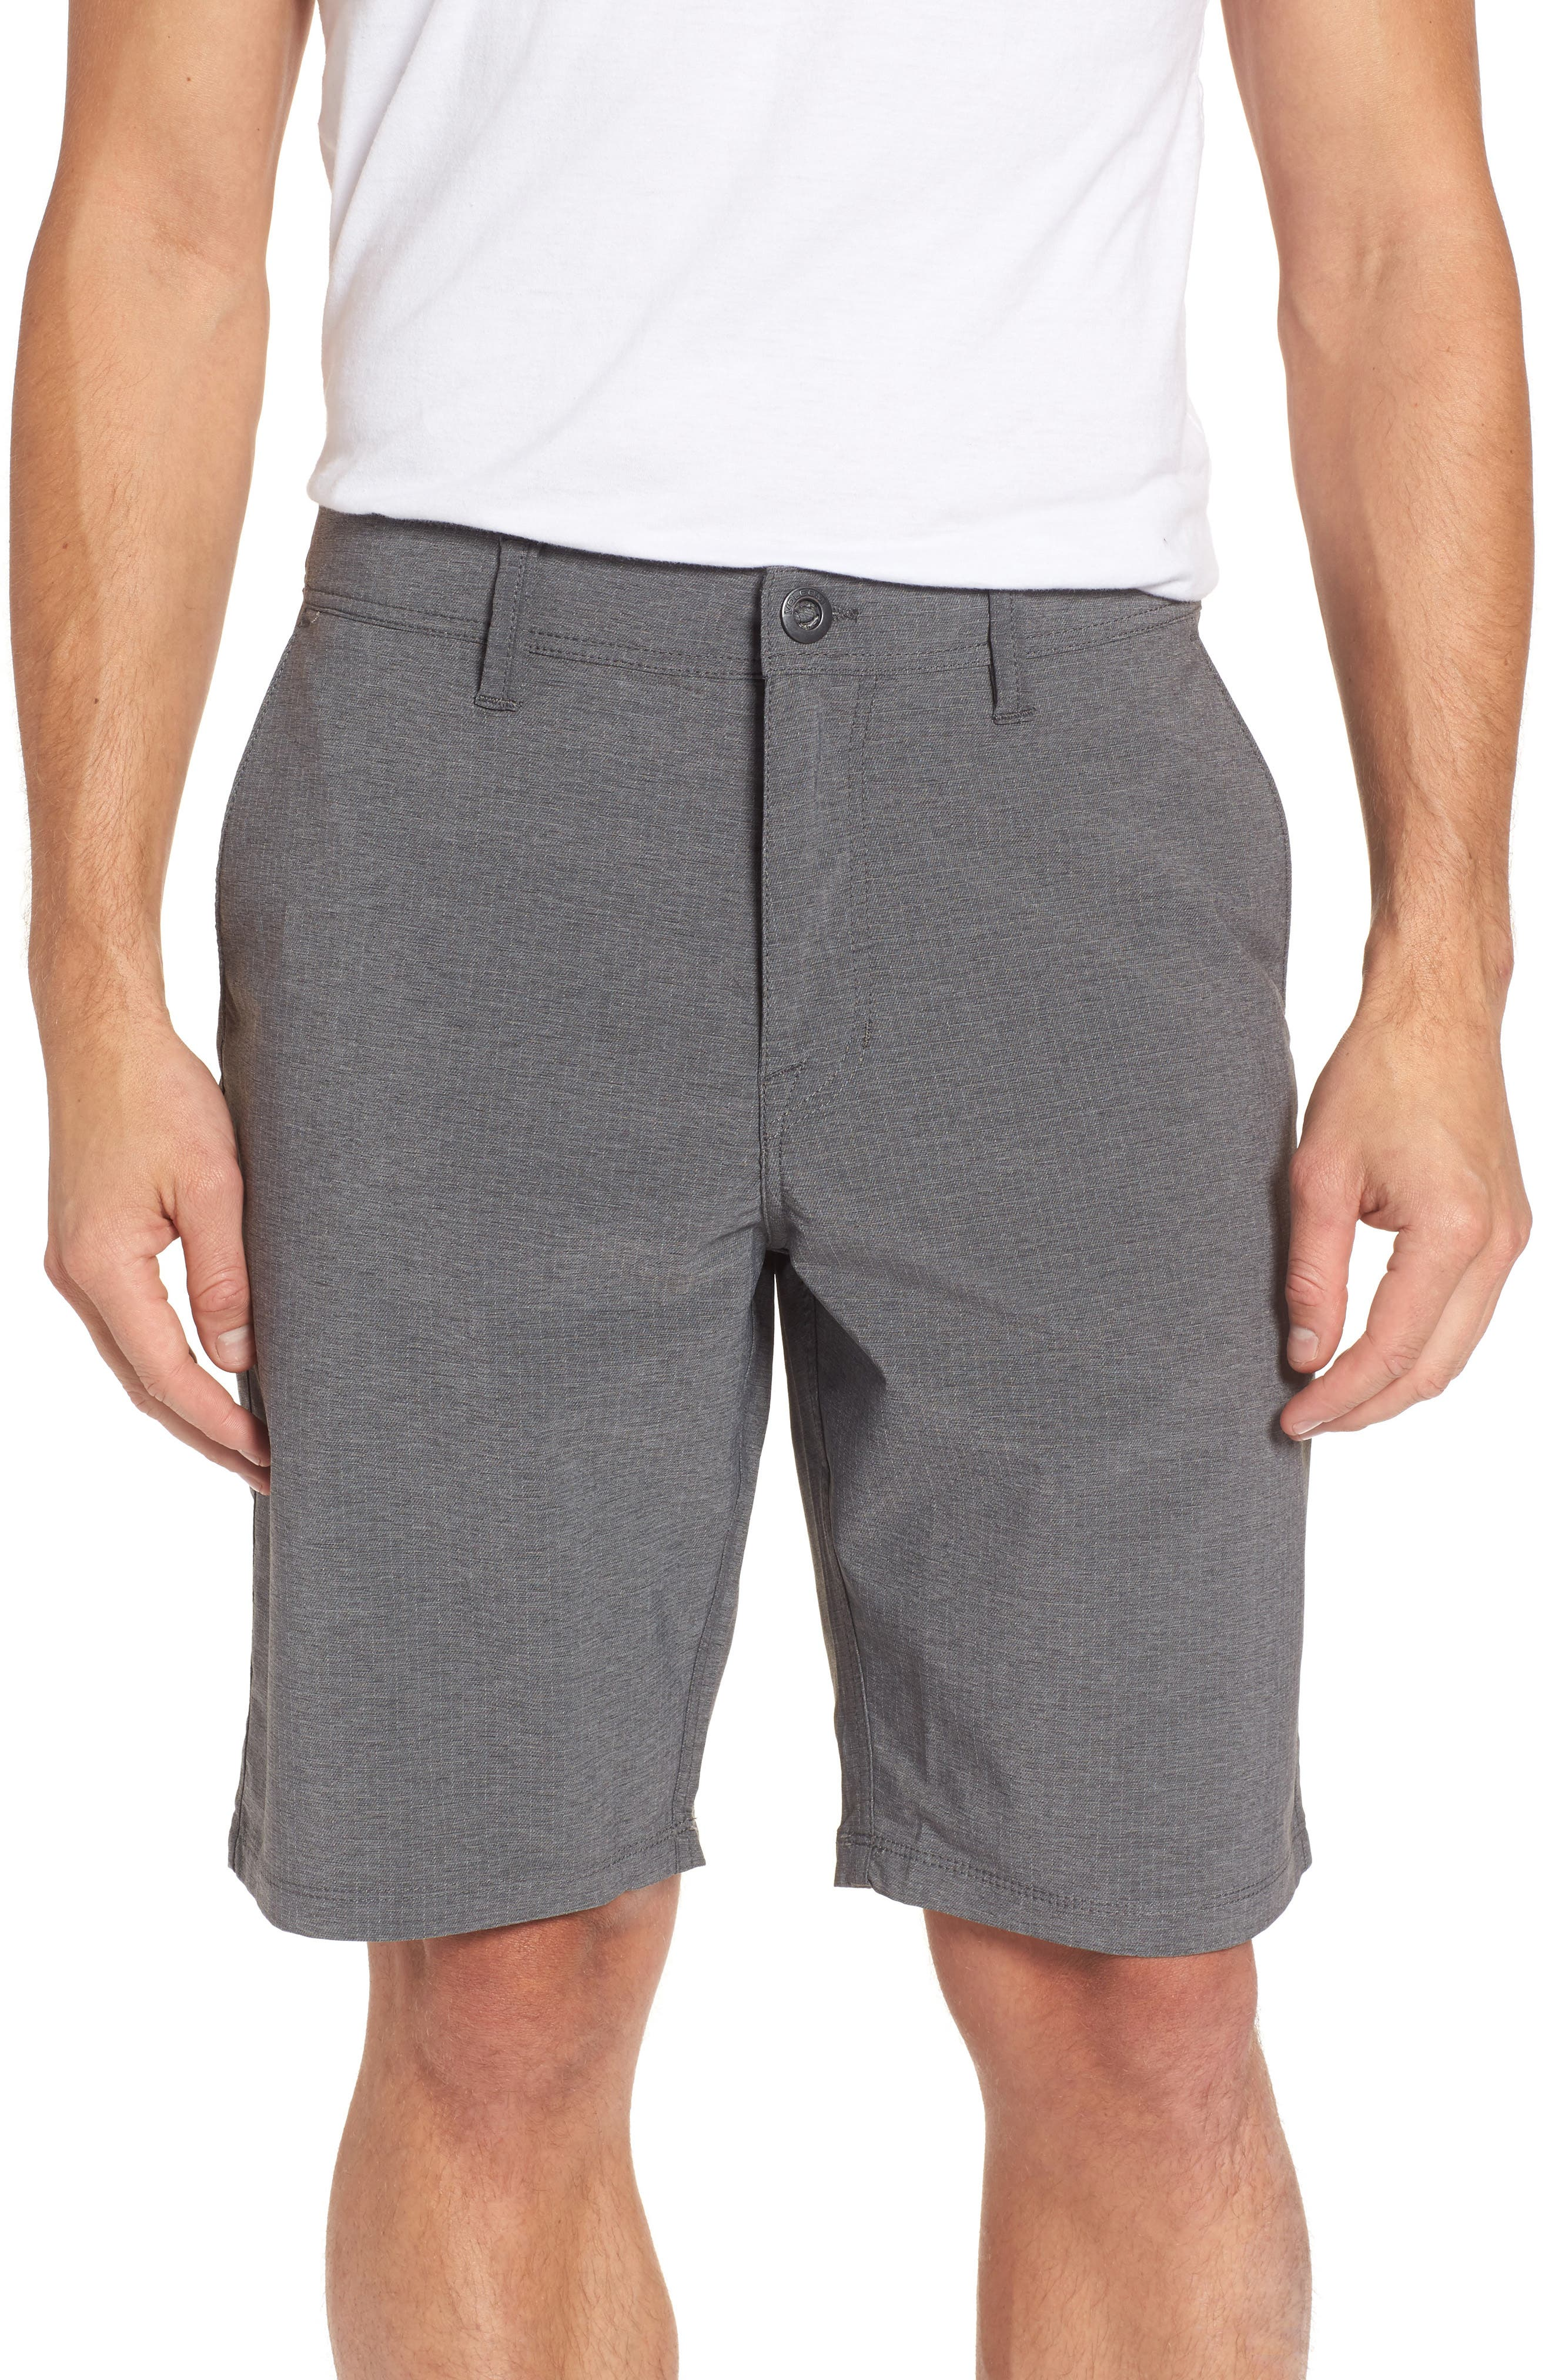 Surf 'N Turf Shorts,                             Main thumbnail 1, color,                             020